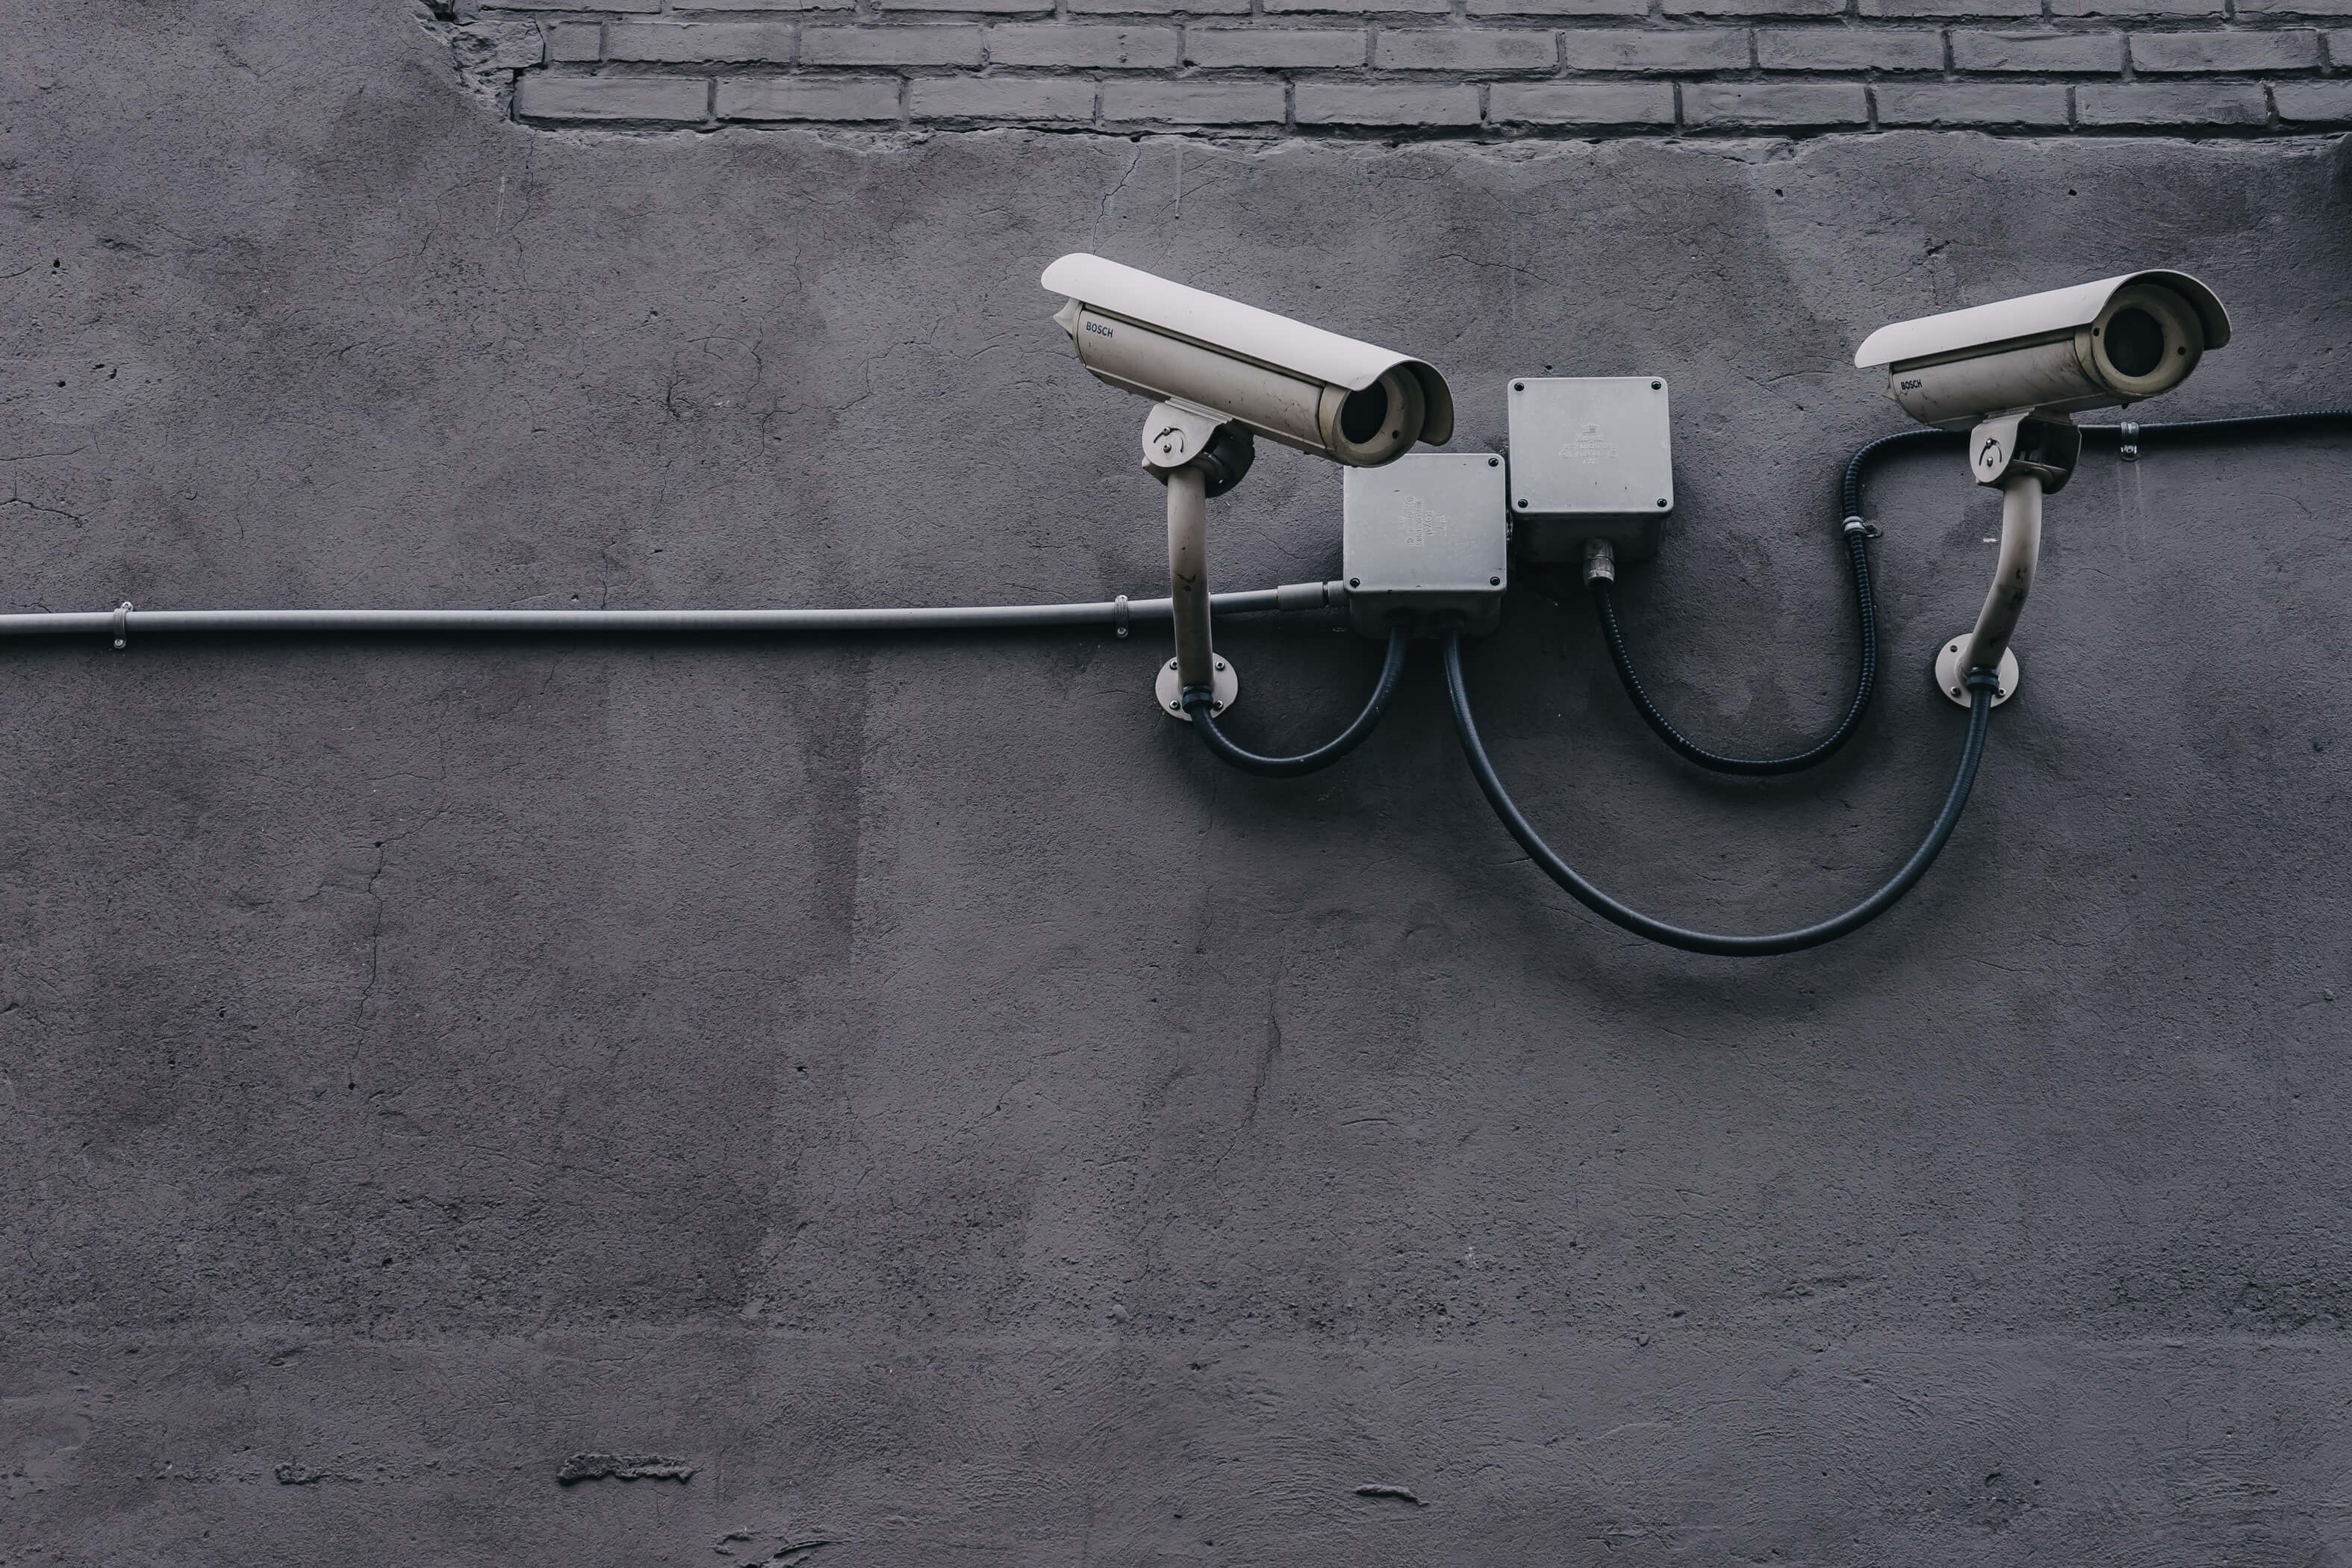 Cameras protecting lawn equipment